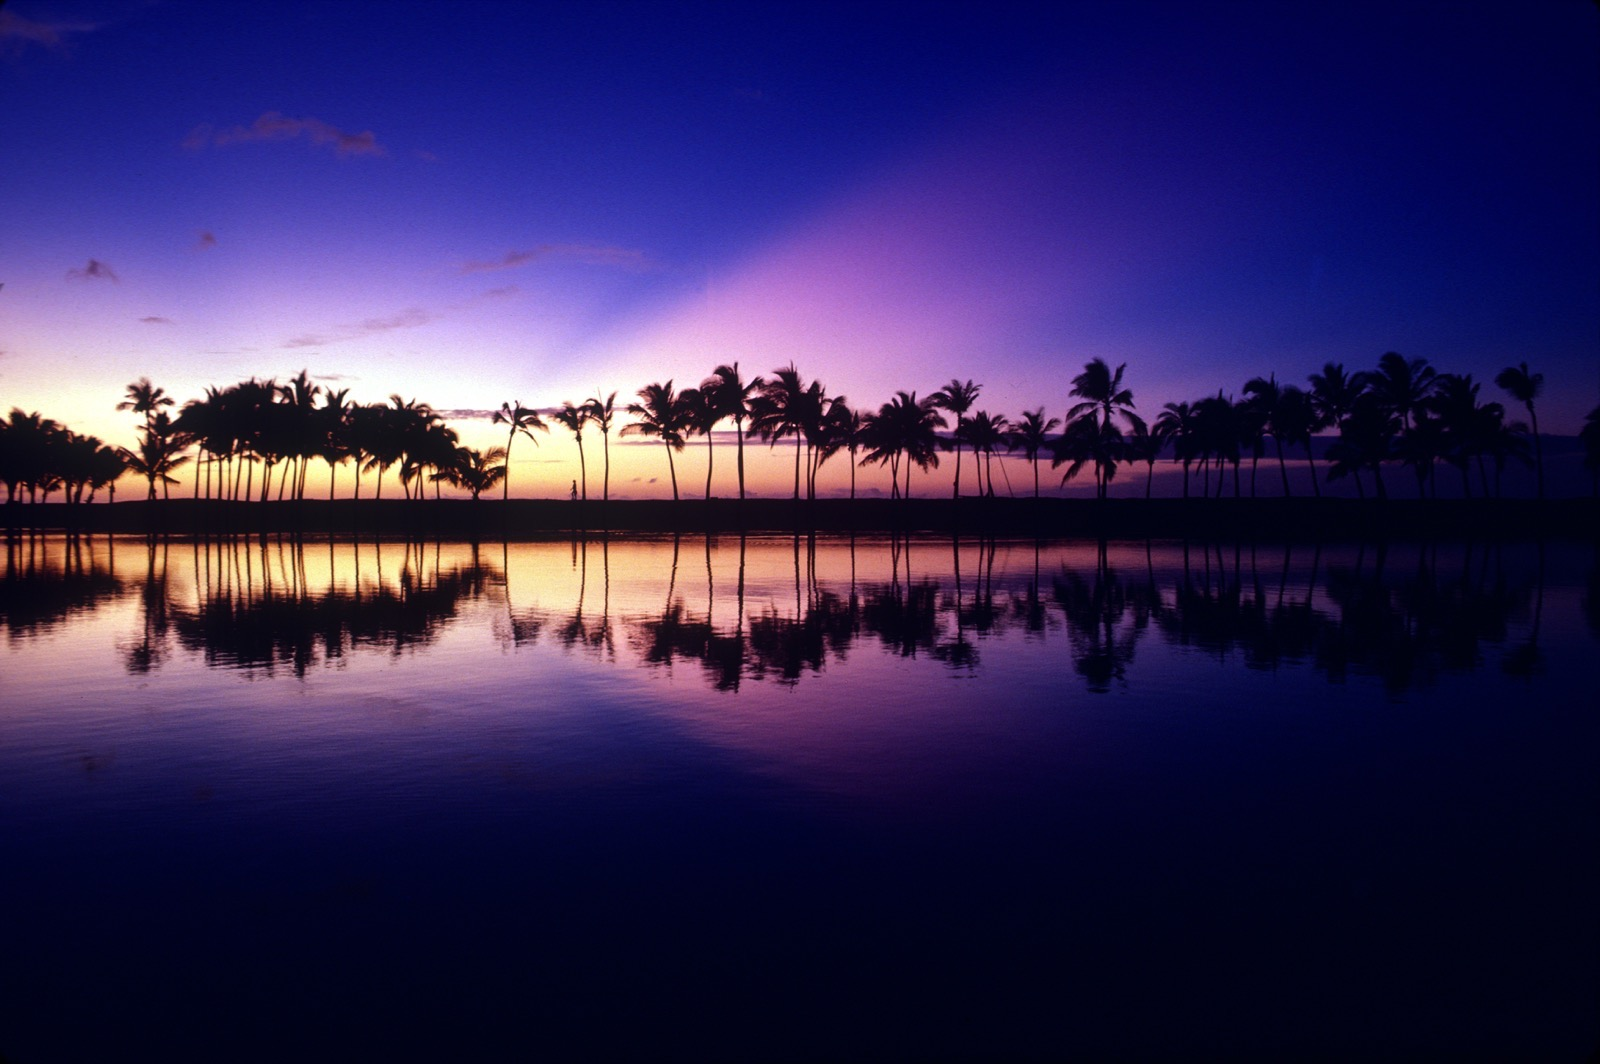 A deep purple and pink sky silhouettes the palm tree lined Hawaiian coast at sunset.